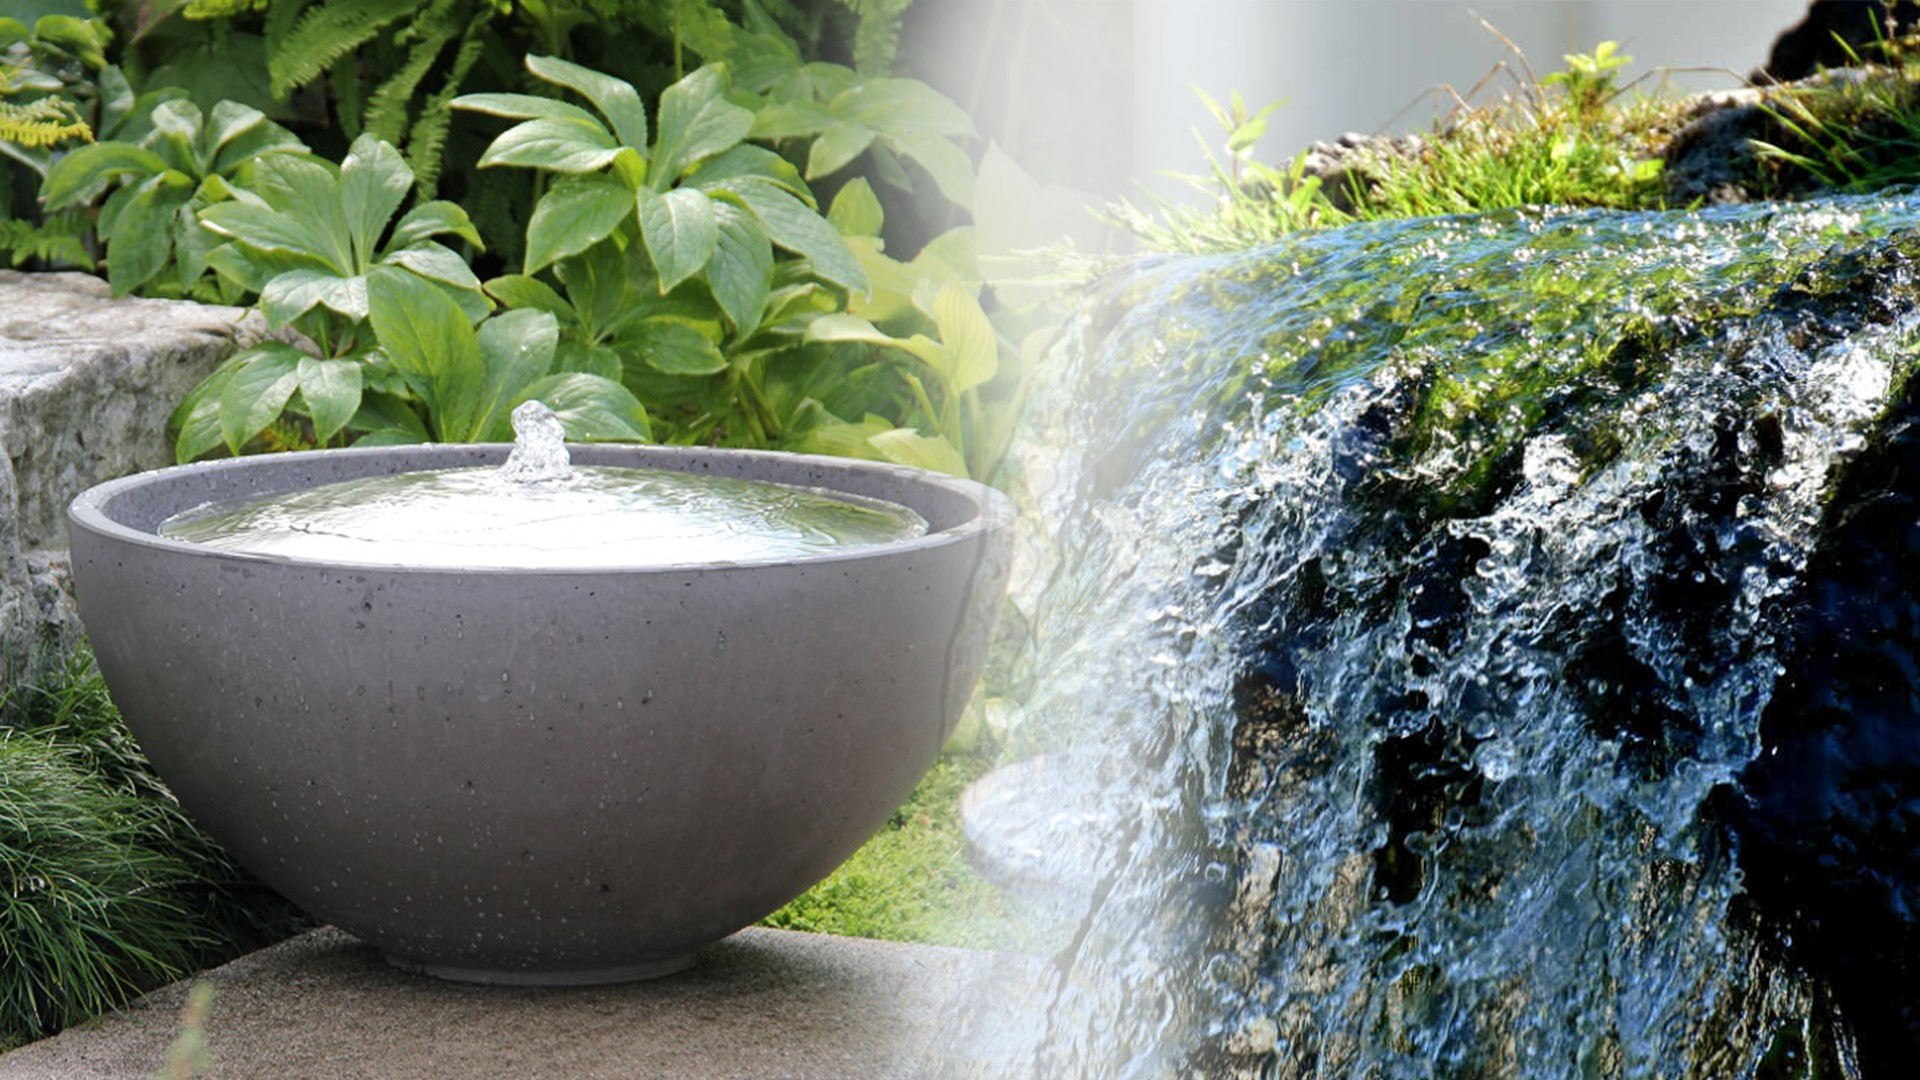 Water Features & Water Falls-Lubbock TX Landscape Designs & Outdoor Living Areas-We offer Landscape Design, Outdoor Patios & Pergolas, Outdoor Living Spaces, Stonescapes, Residential & Commercial Landscaping, Irrigation Installation & Repairs, Drainage Systems, Landscape Lighting, Outdoor Living Spaces, Tree Service, Lawn Service, and more.